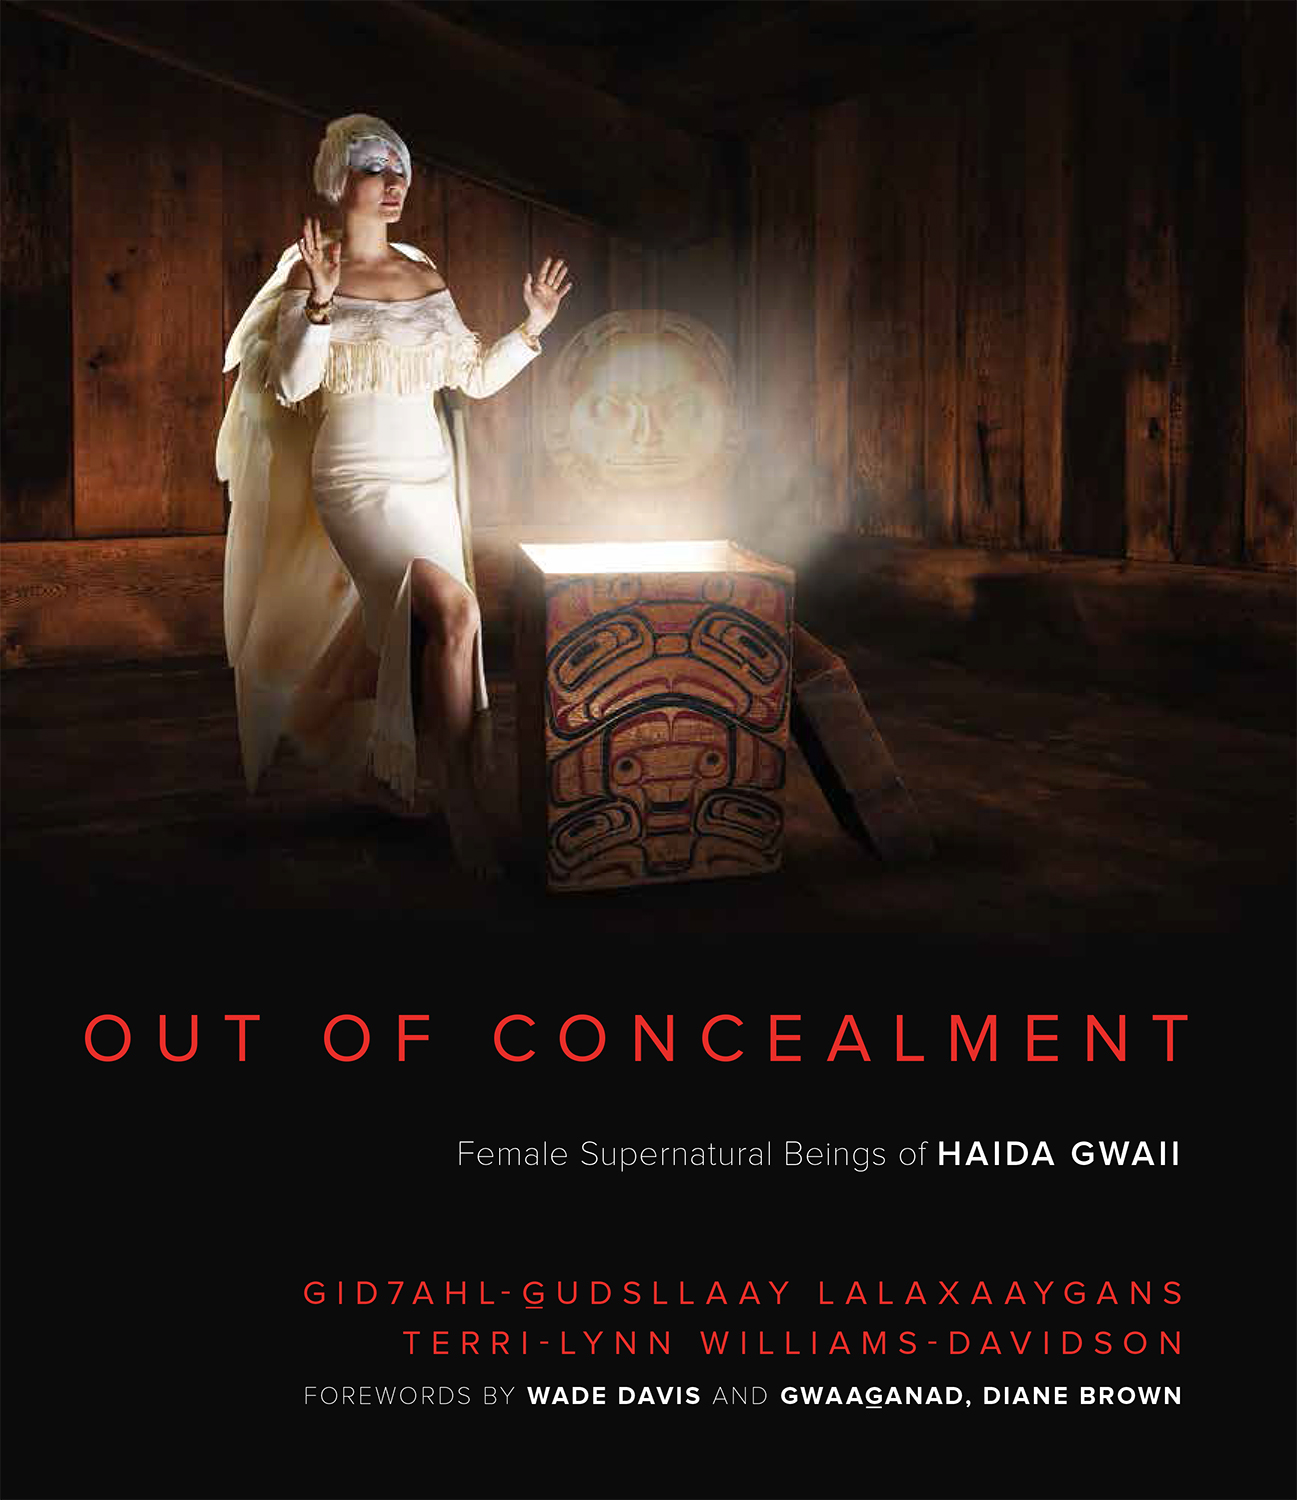 Out of Concealment - Female Supernatural Beings of Haida